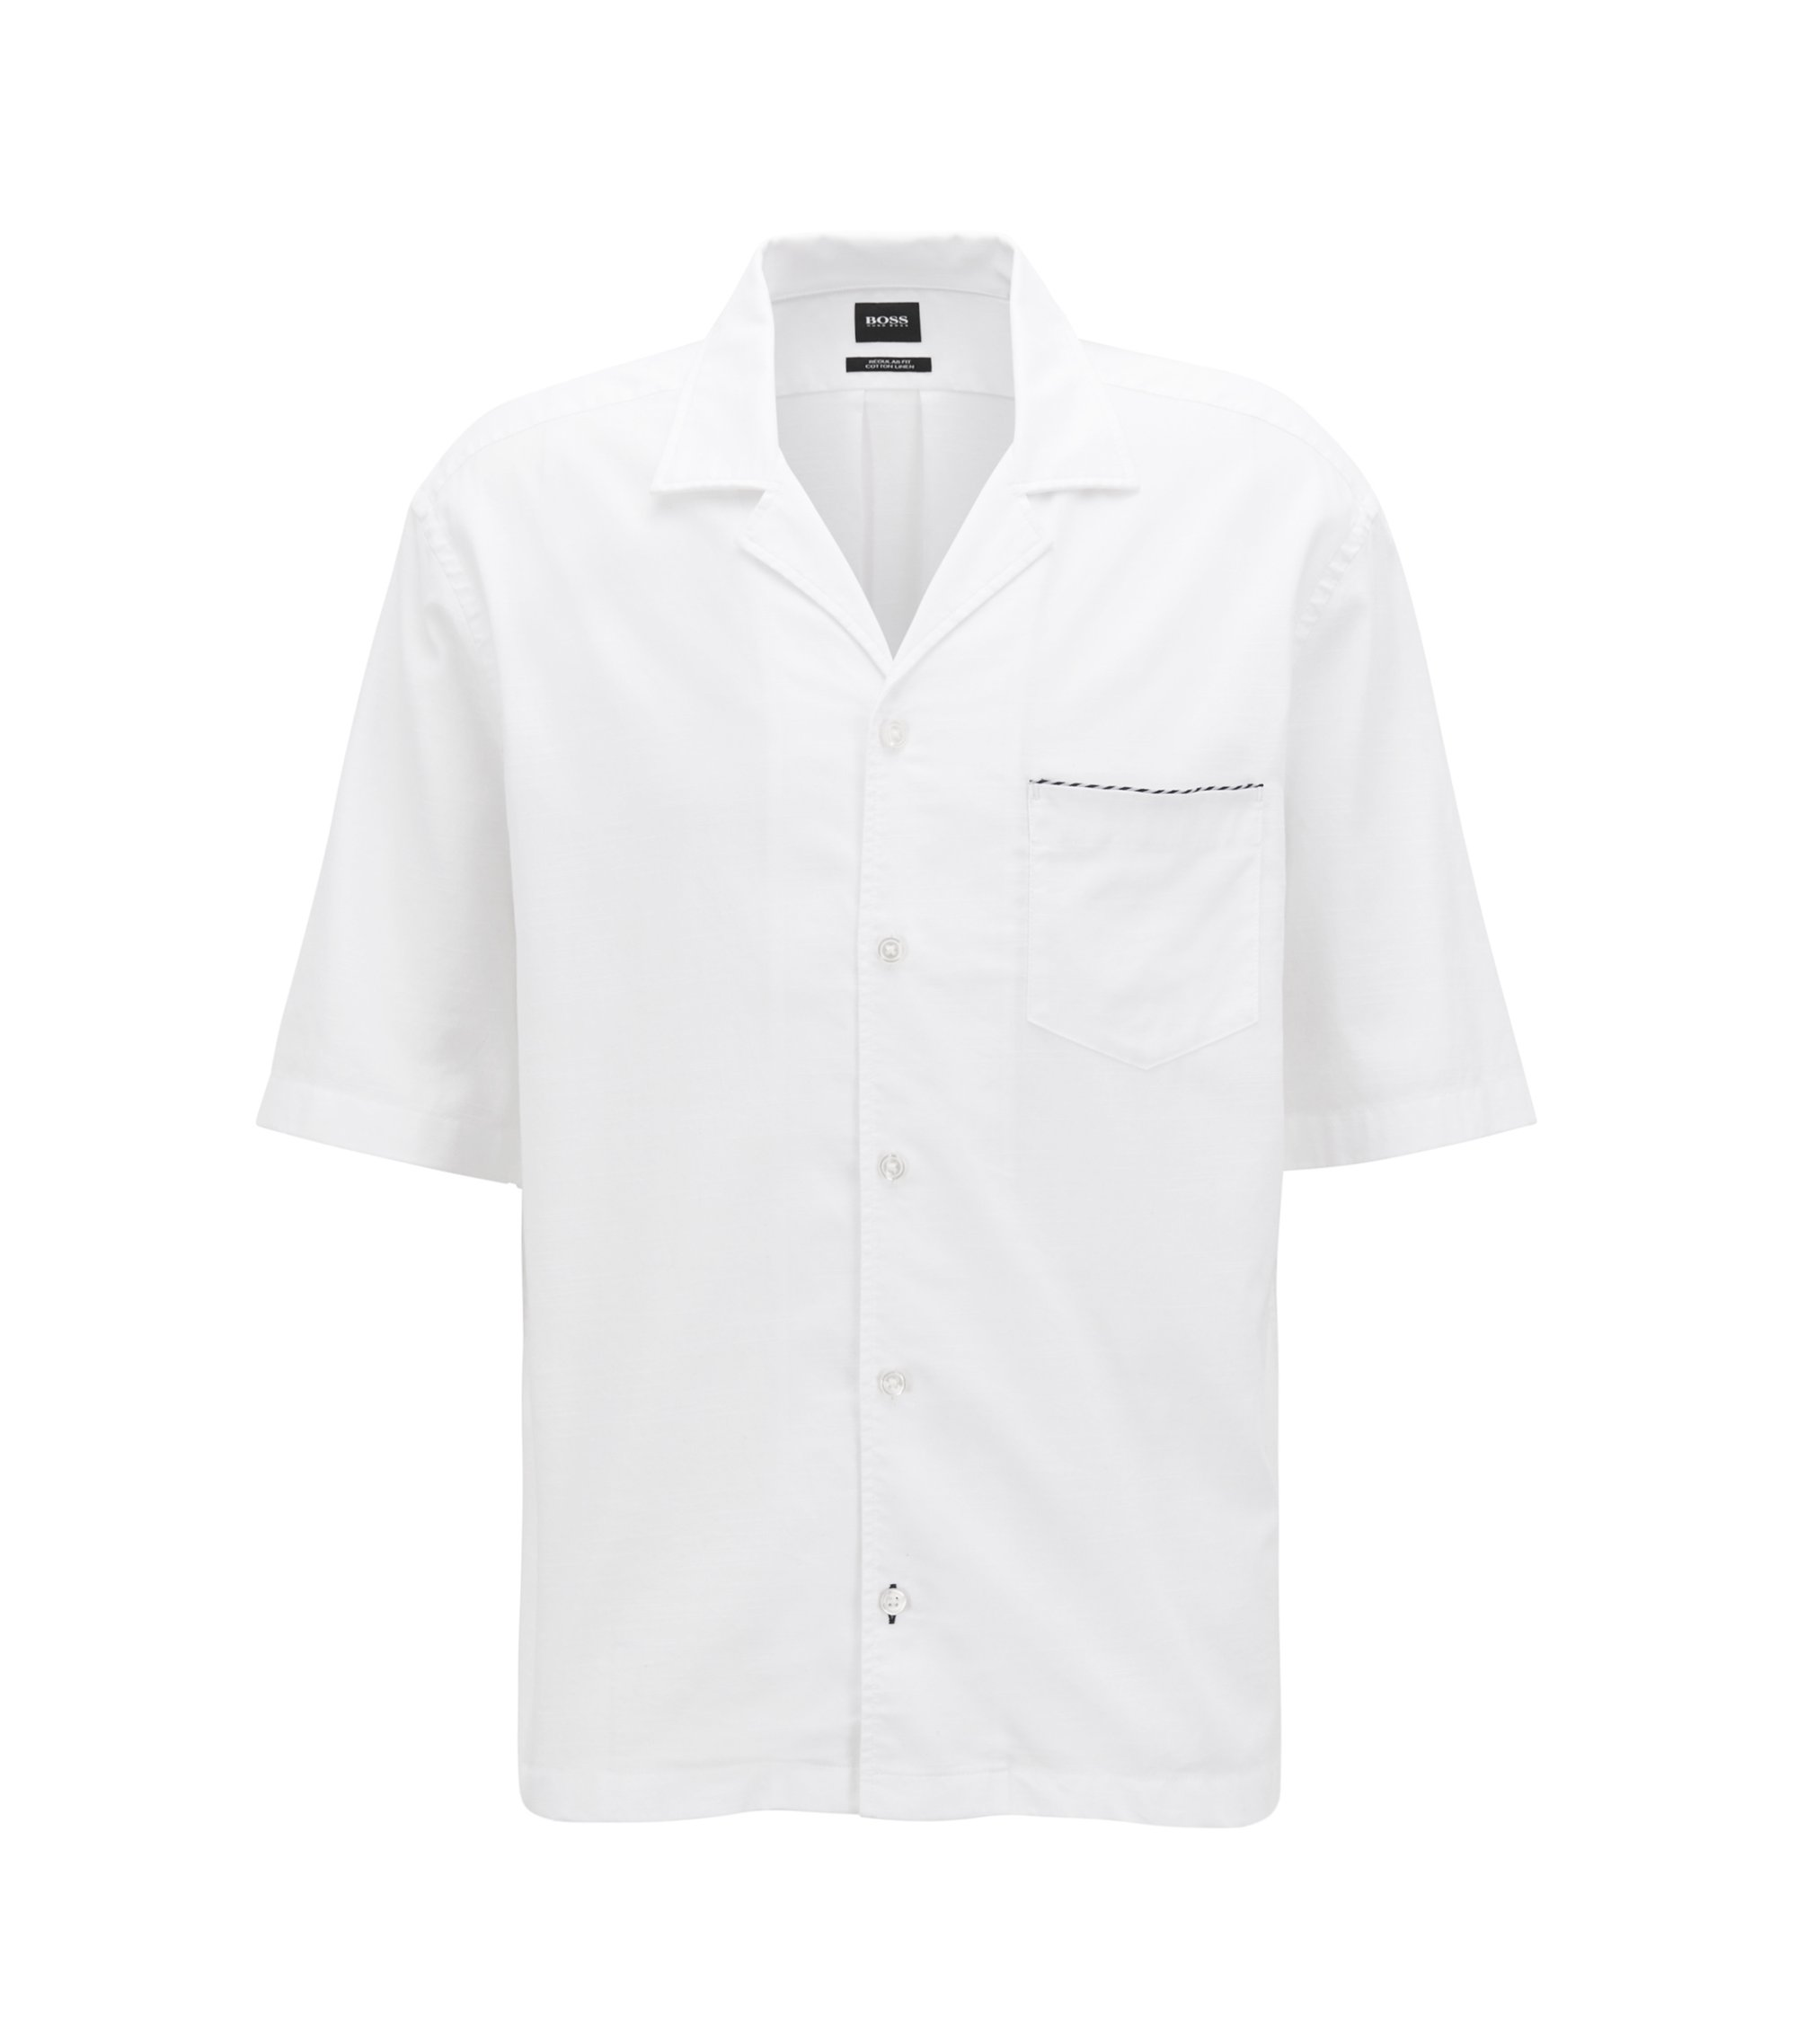 Short-sleeved cotton-blend shirt in a slim fit , White